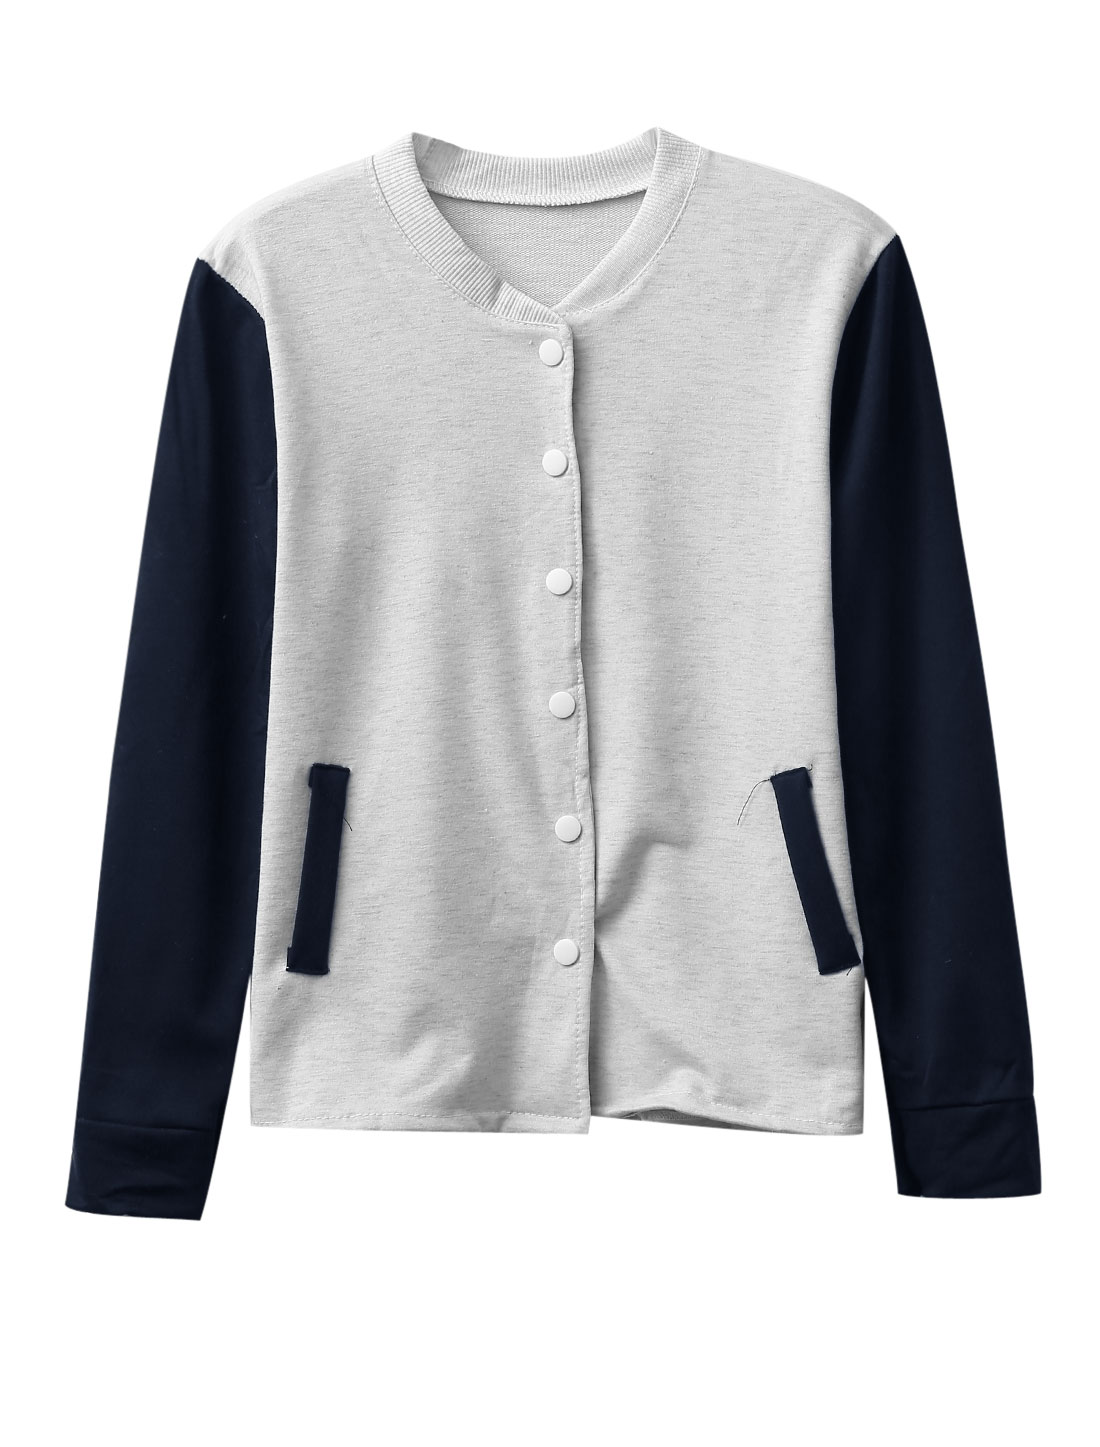 Lady Stand Collar Single Breasted Casual Baseball Jacket Light Gray Navy Blue XS